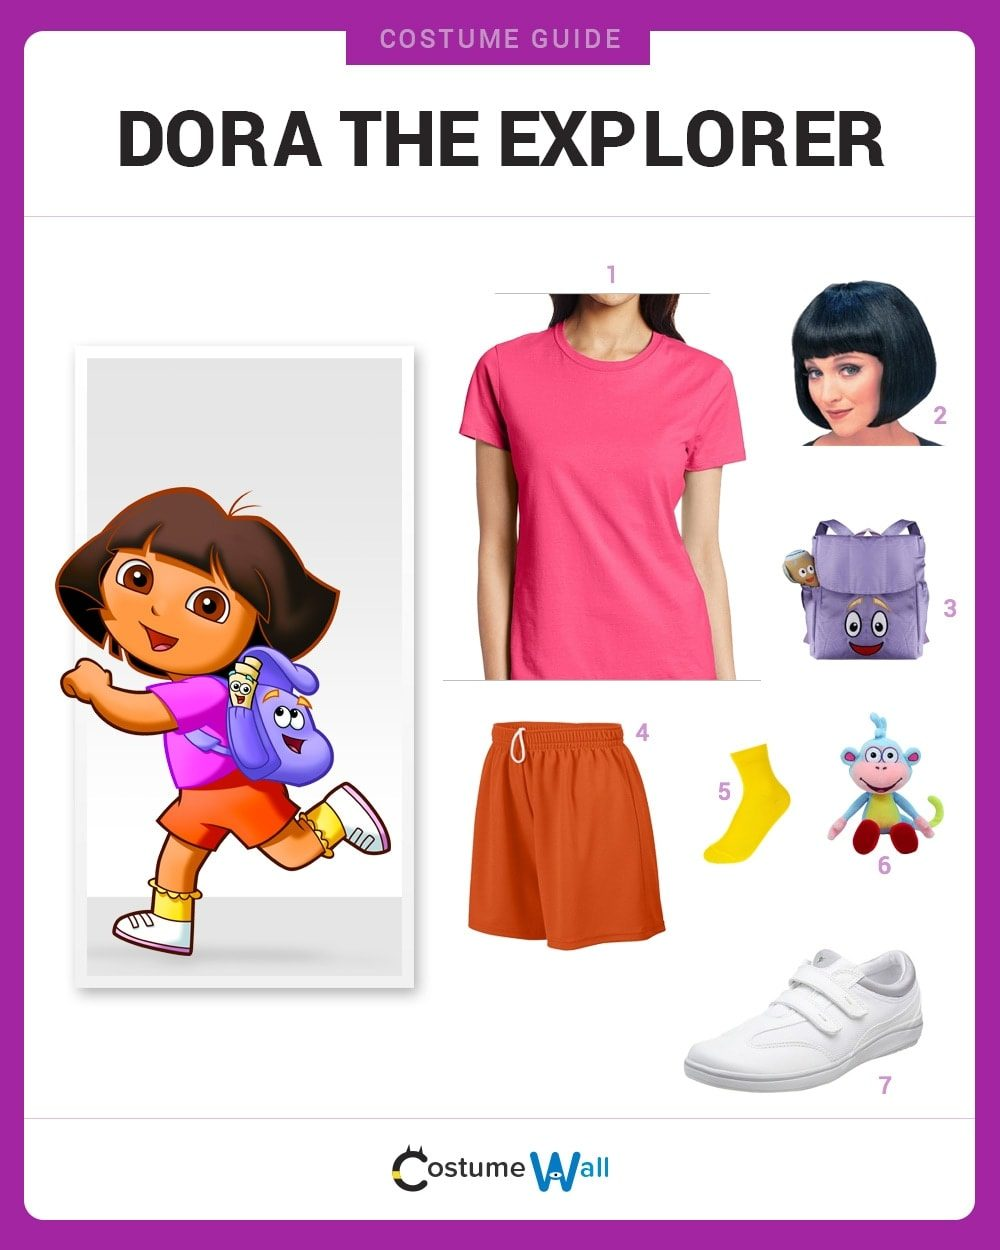 Dora the Explorer Costume Guide